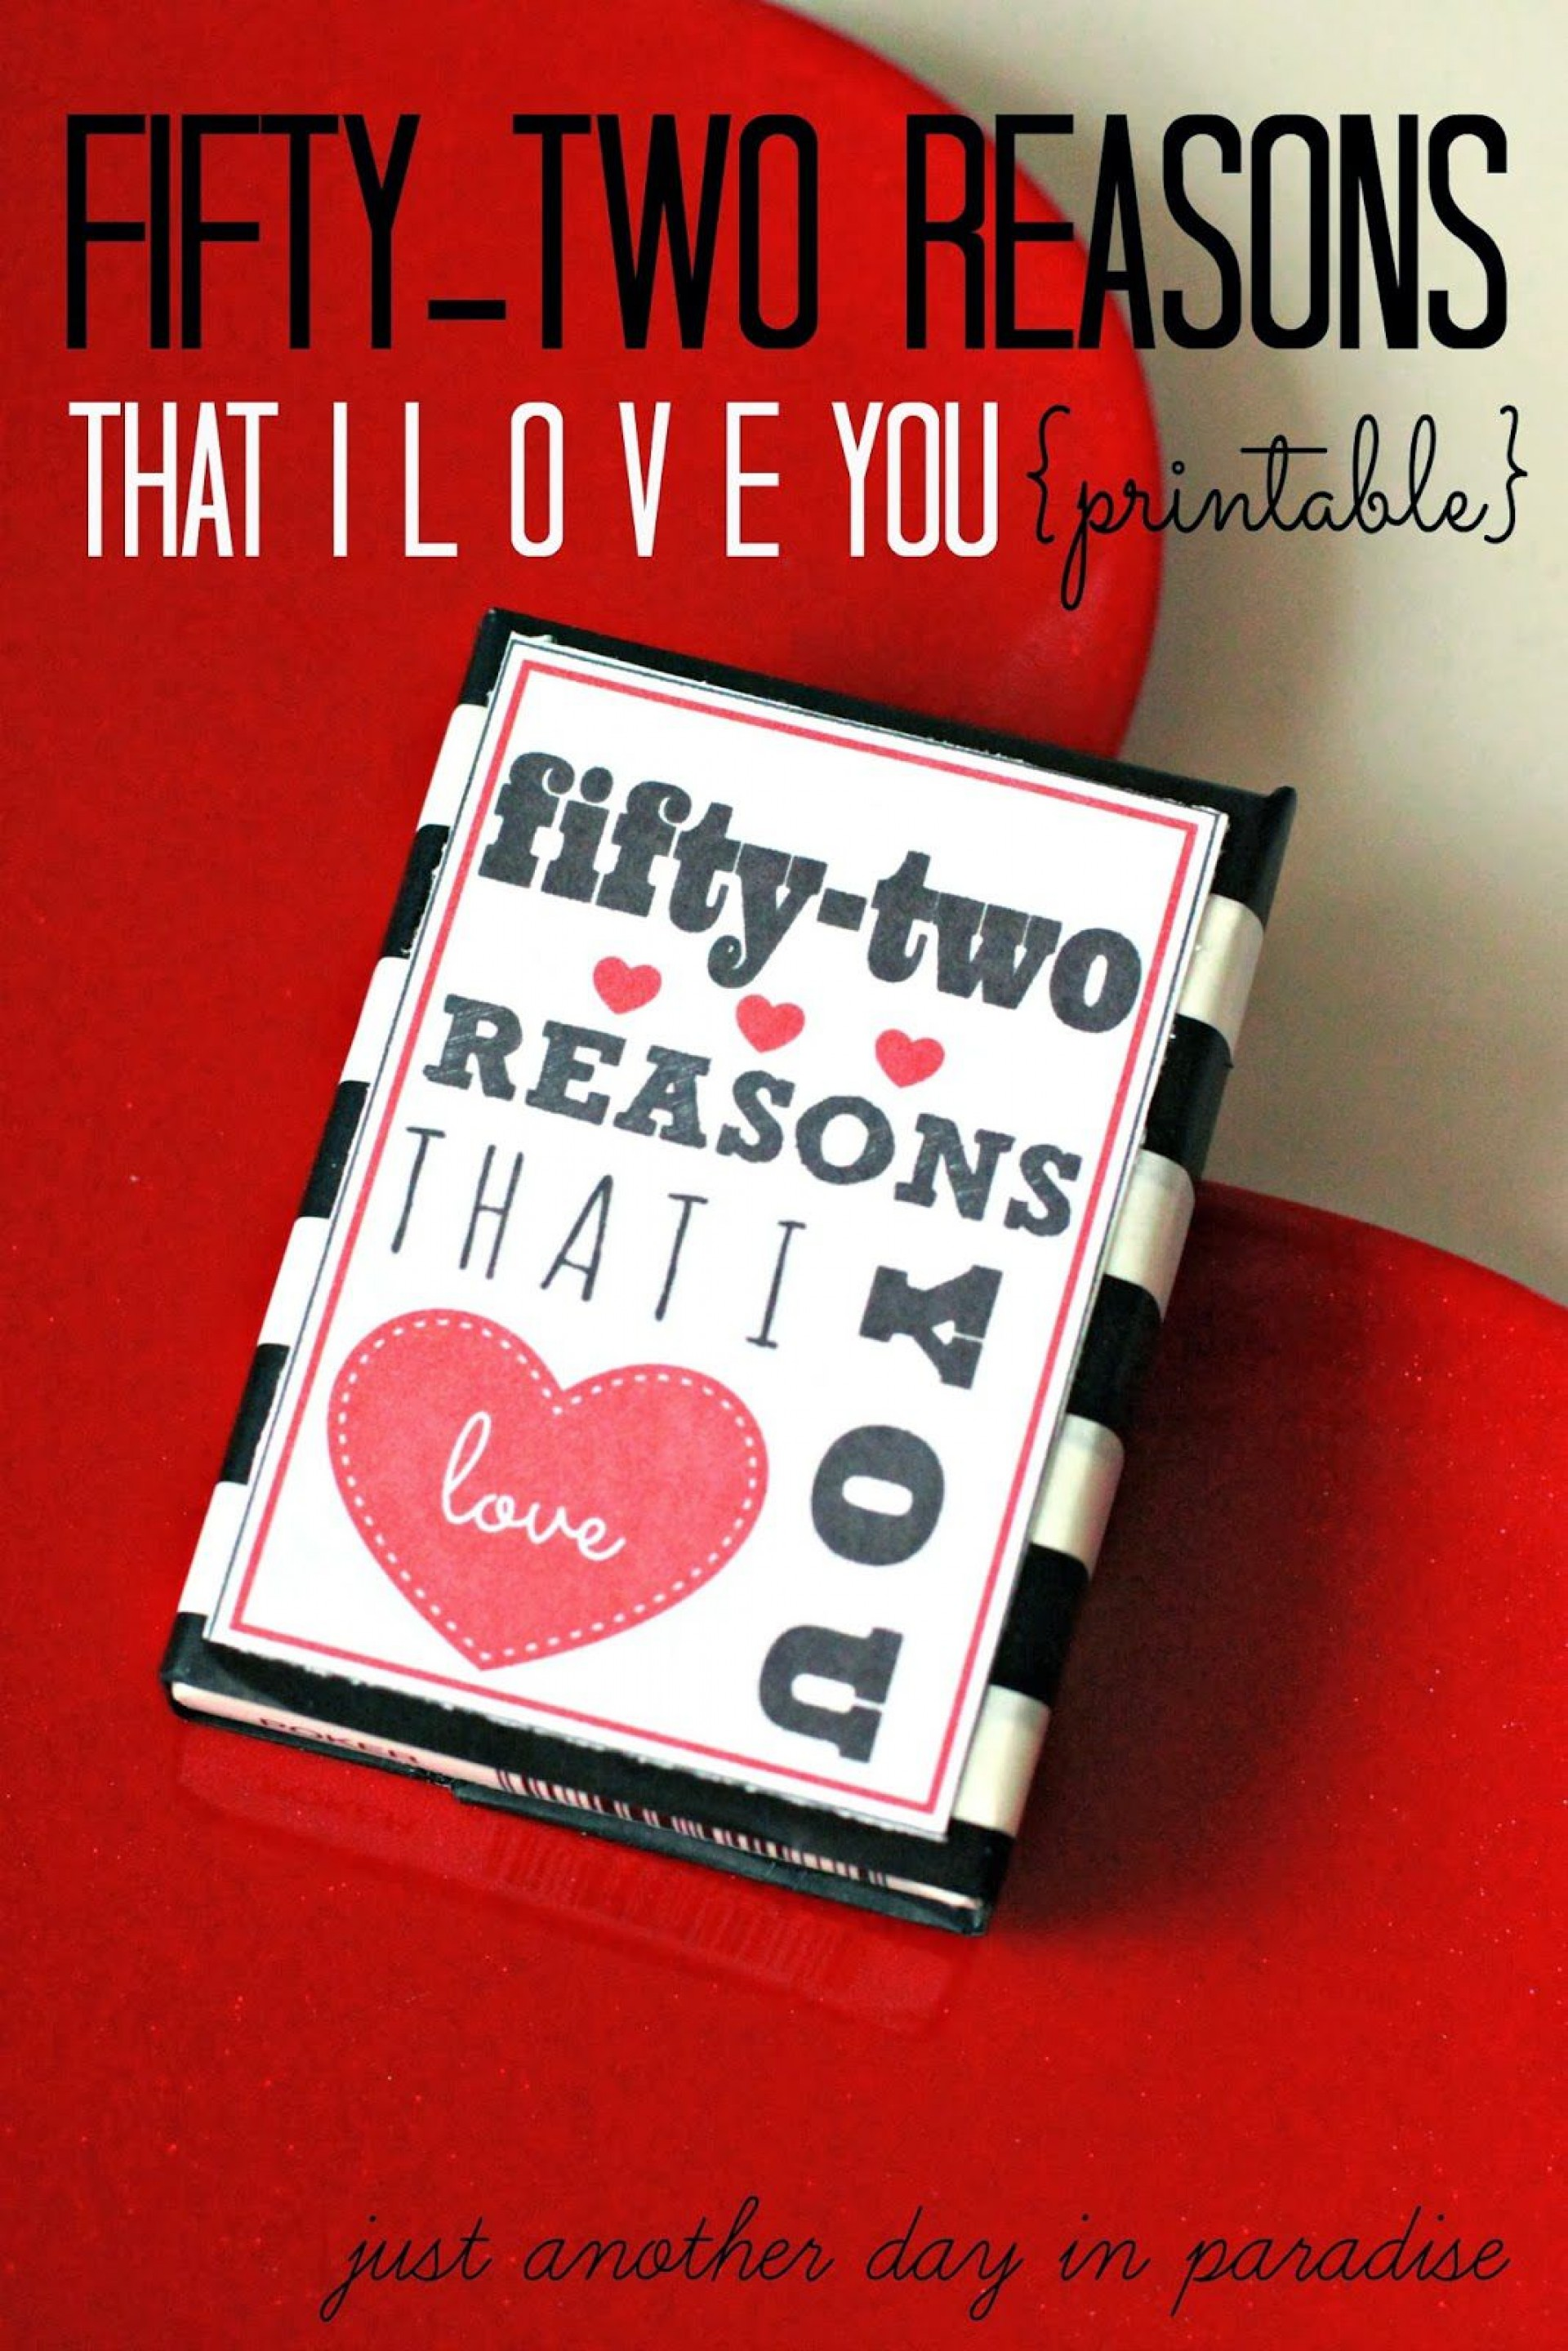 003 Fearsome 52 Reason Why I Love You Deck Of Card Free Template Highest Quality 1920